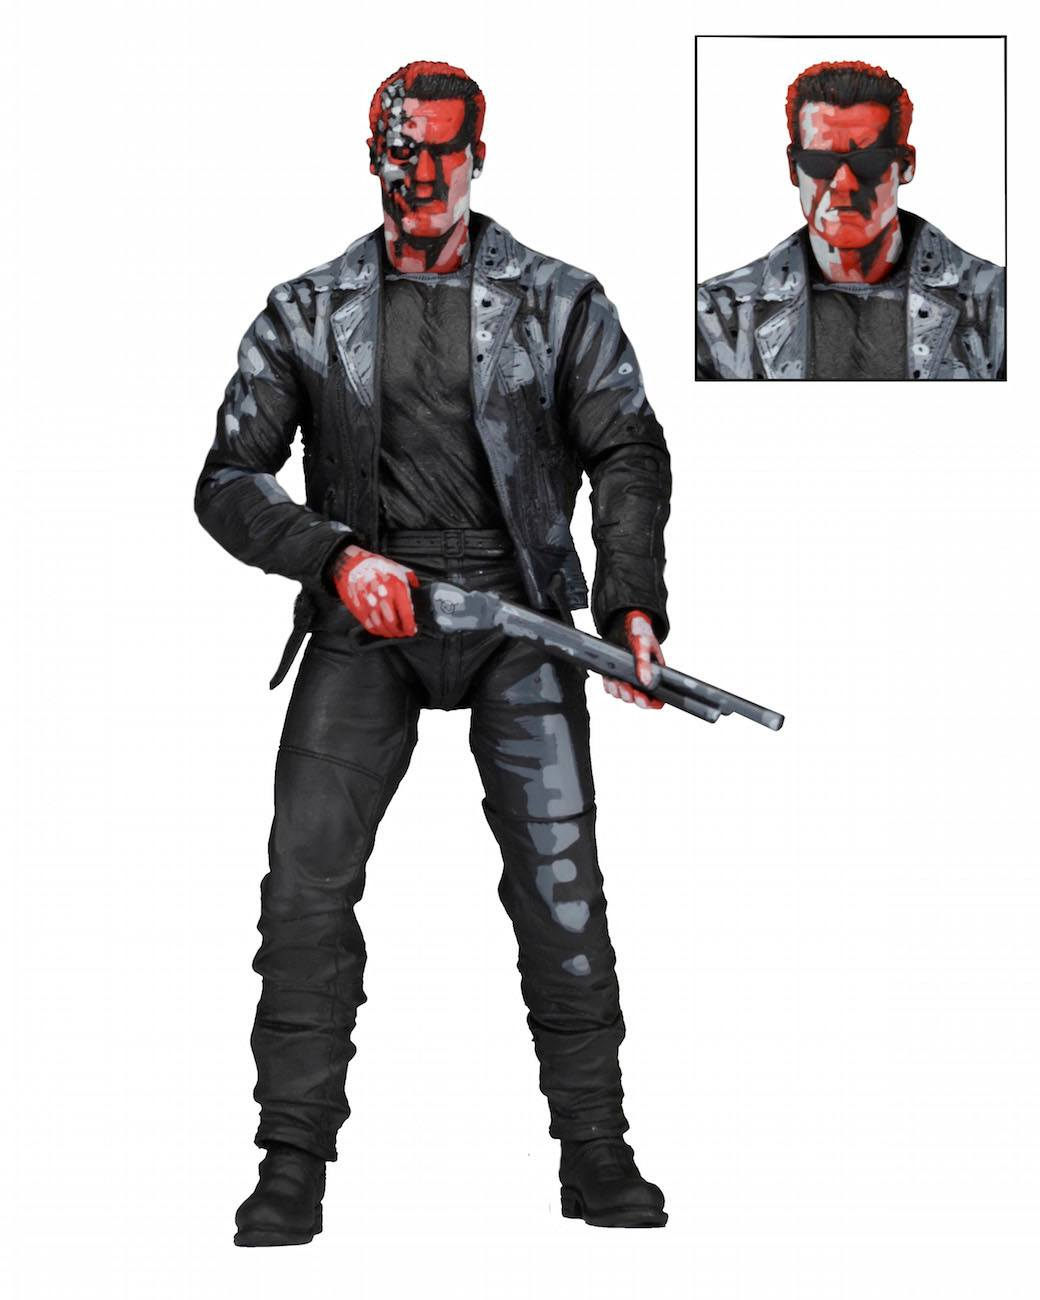 Terminator 2 Judgment Day Action Figure T-800 Video Game Appearance 18 cm